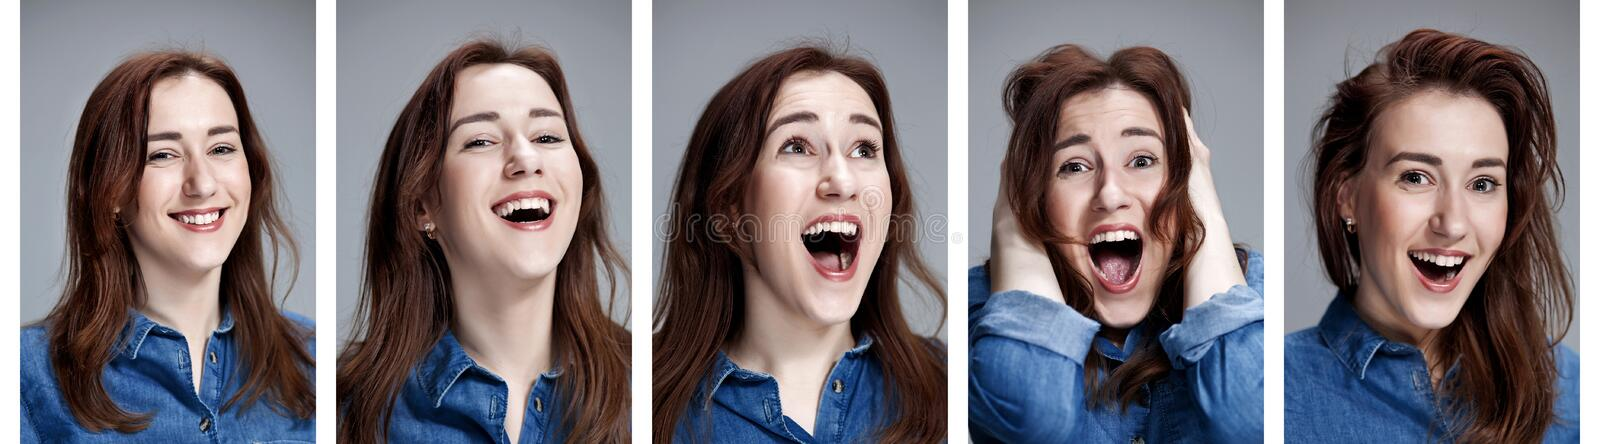 Set of young woman`s portraits with different happy emotions royalty free stock image